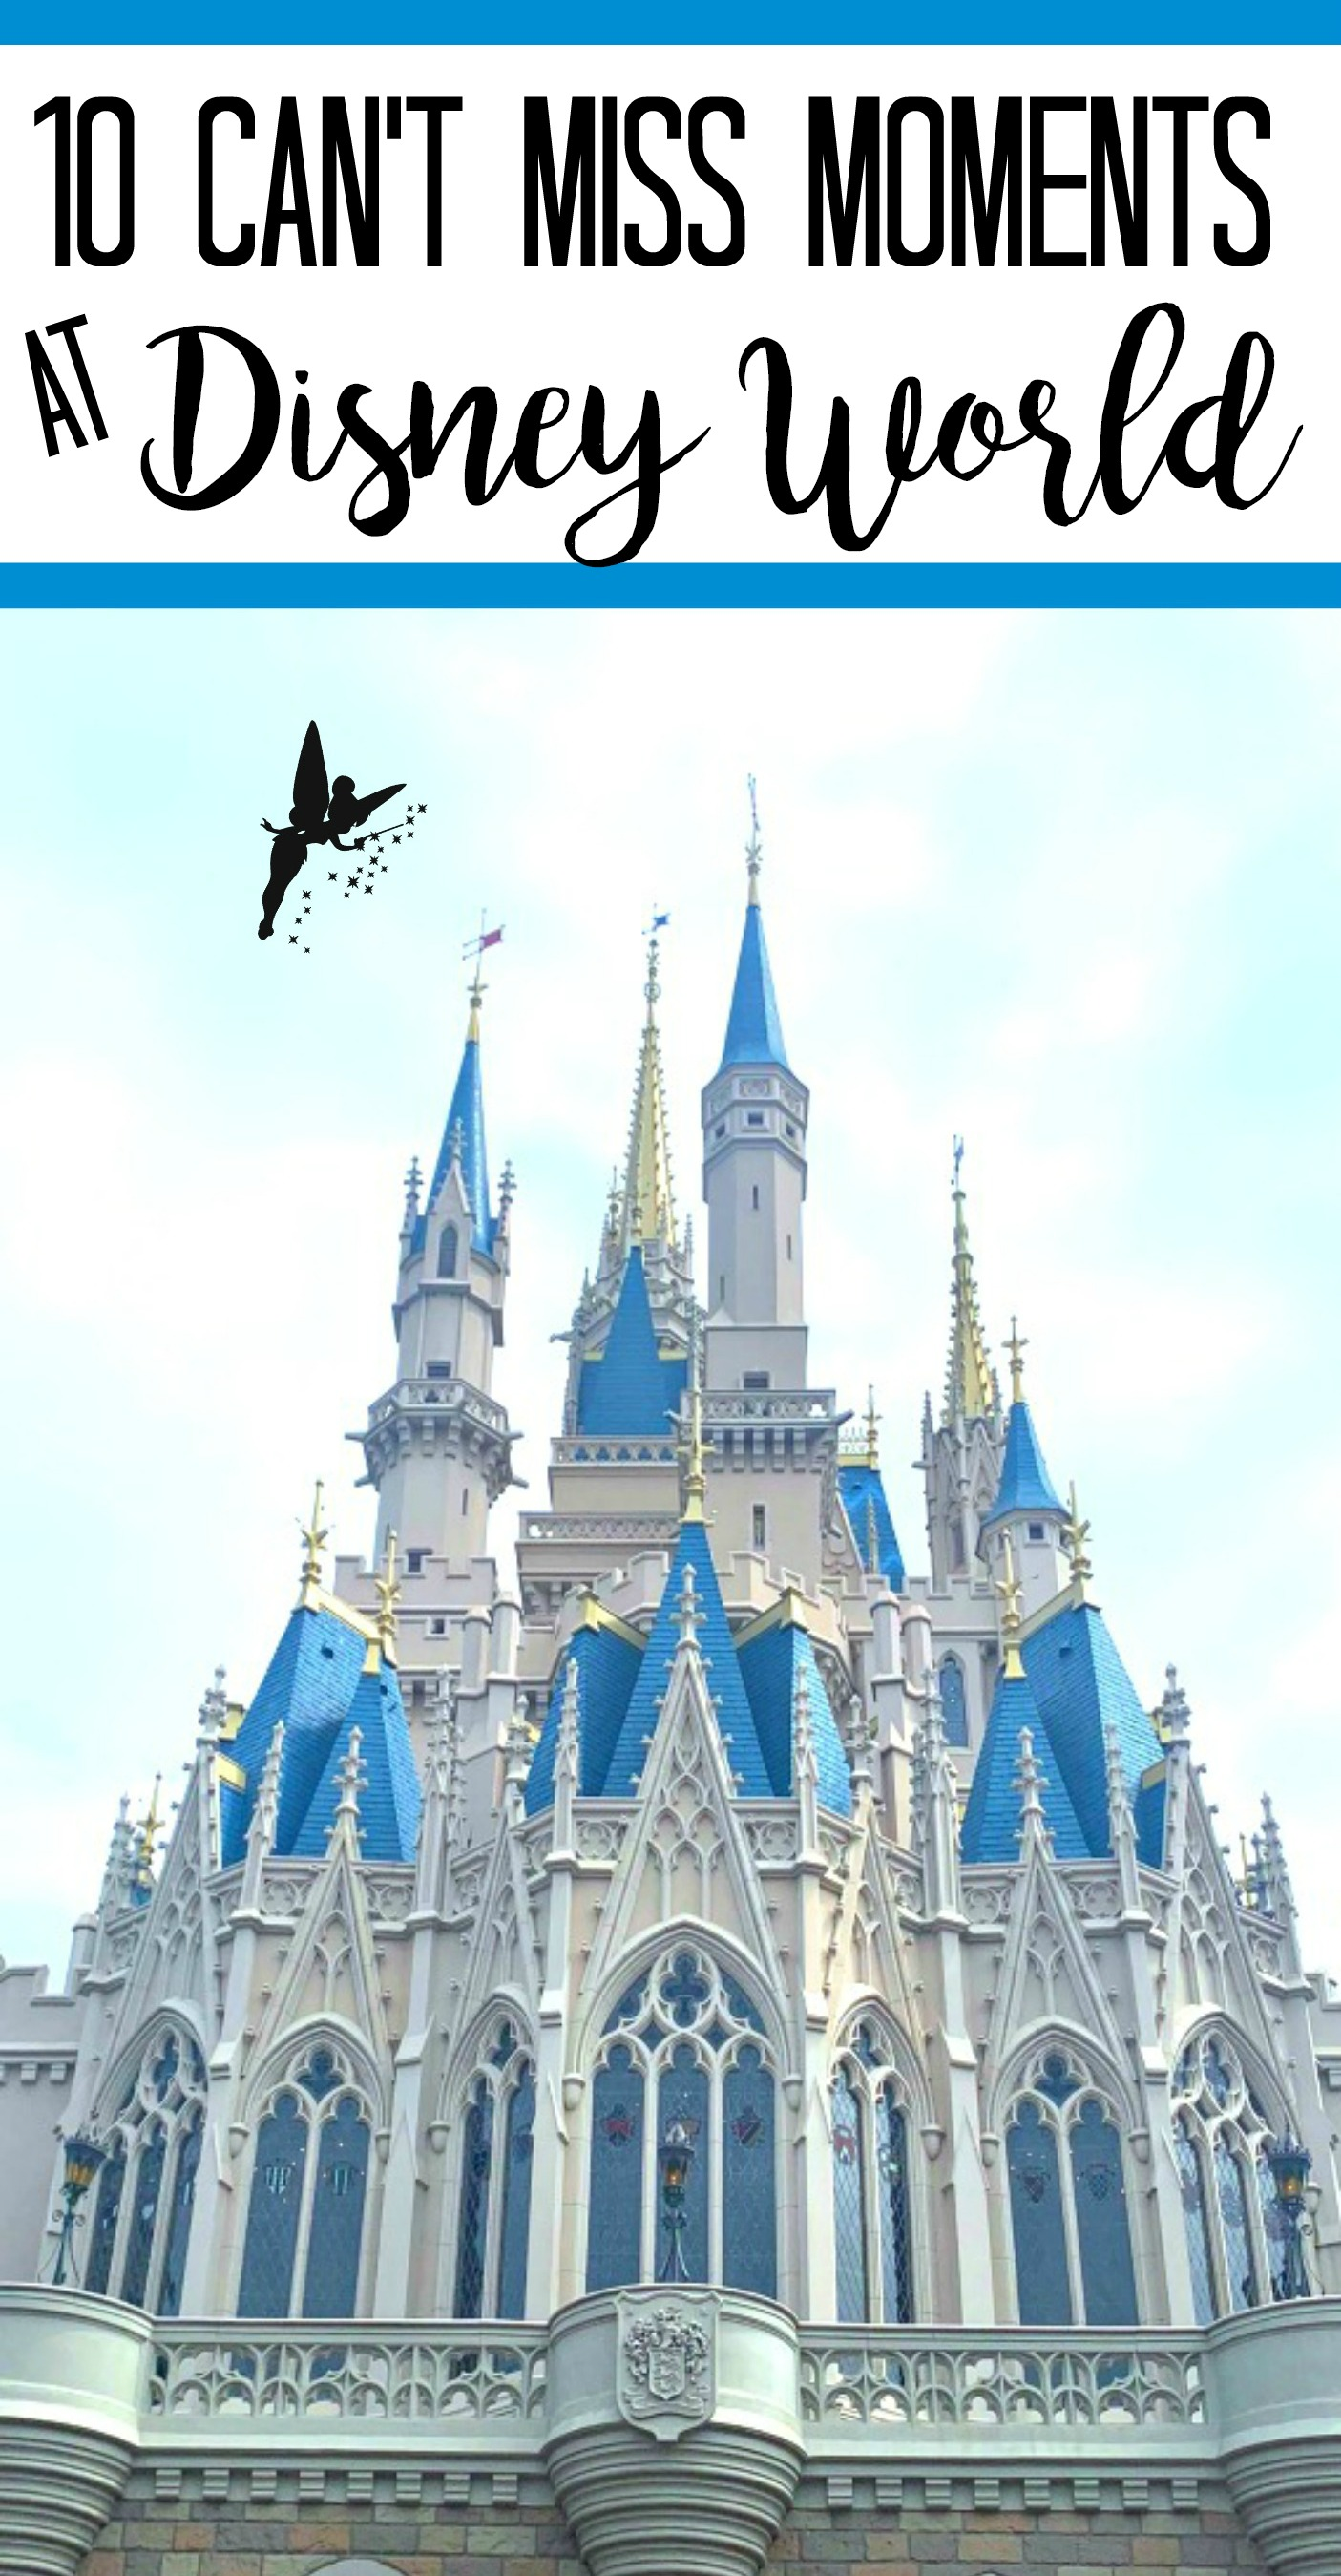 10 Can't Miss Moments at Disney World